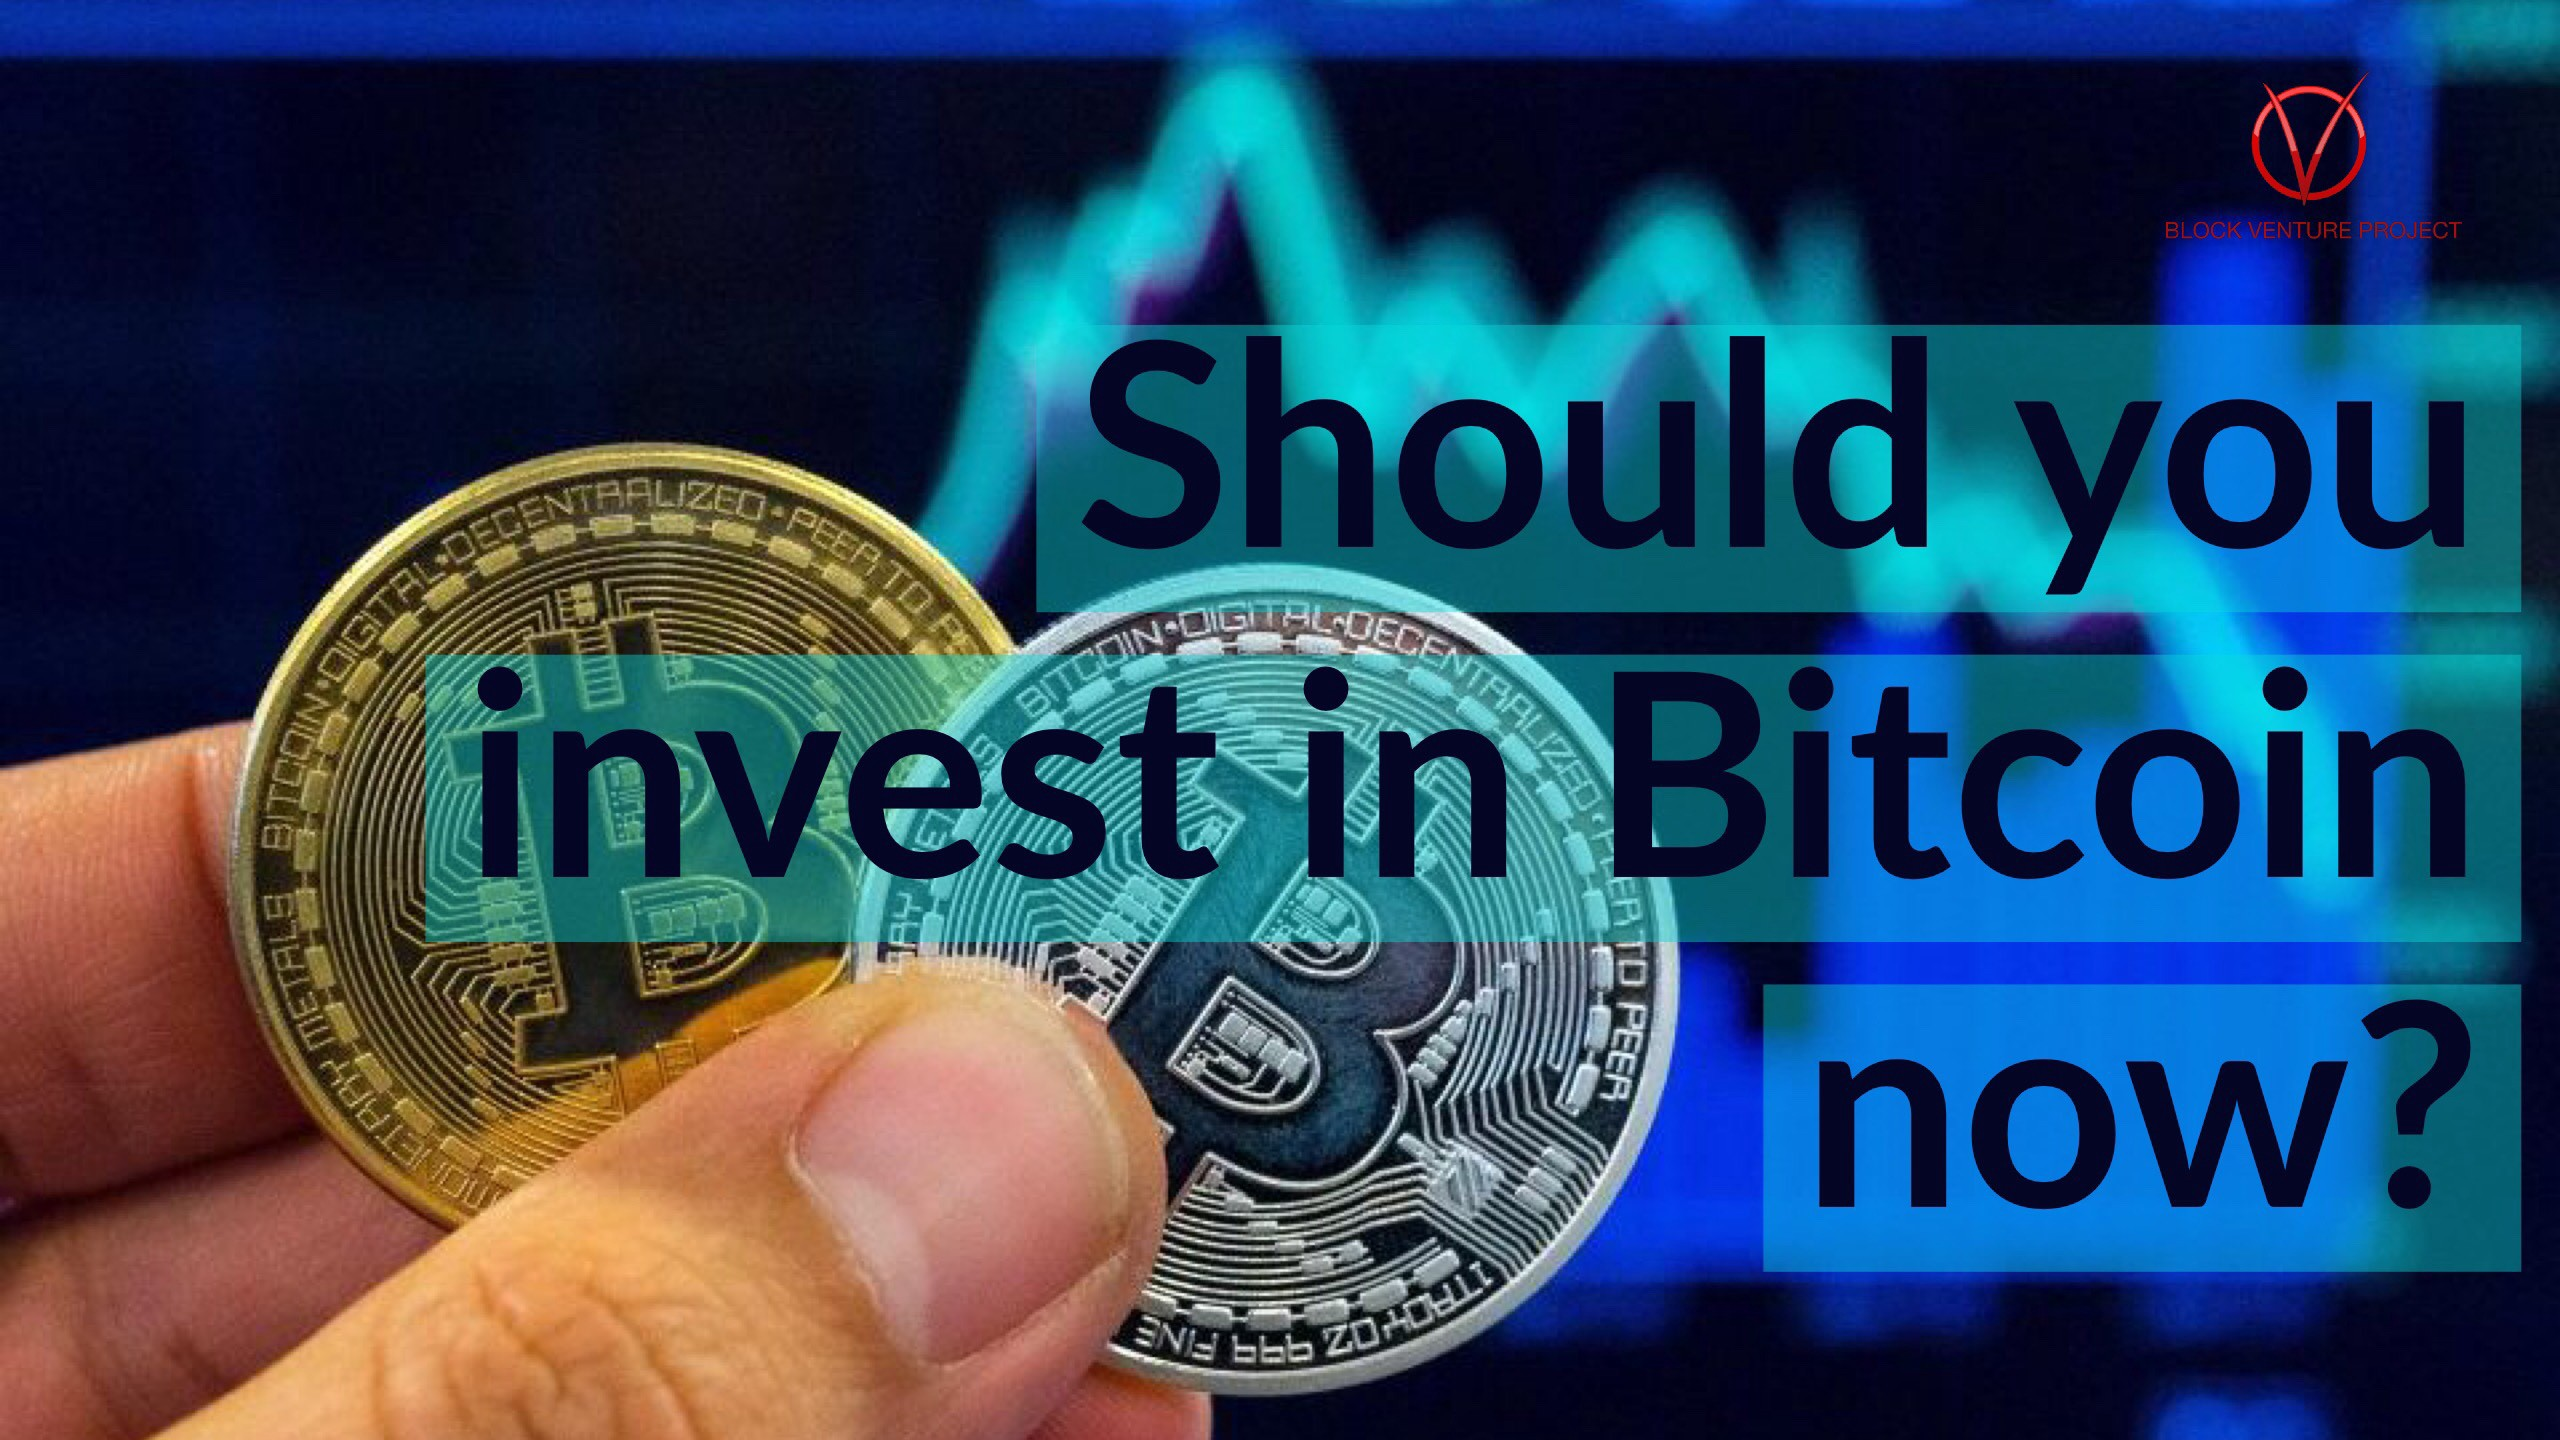 How much money should you invest in bitcoin